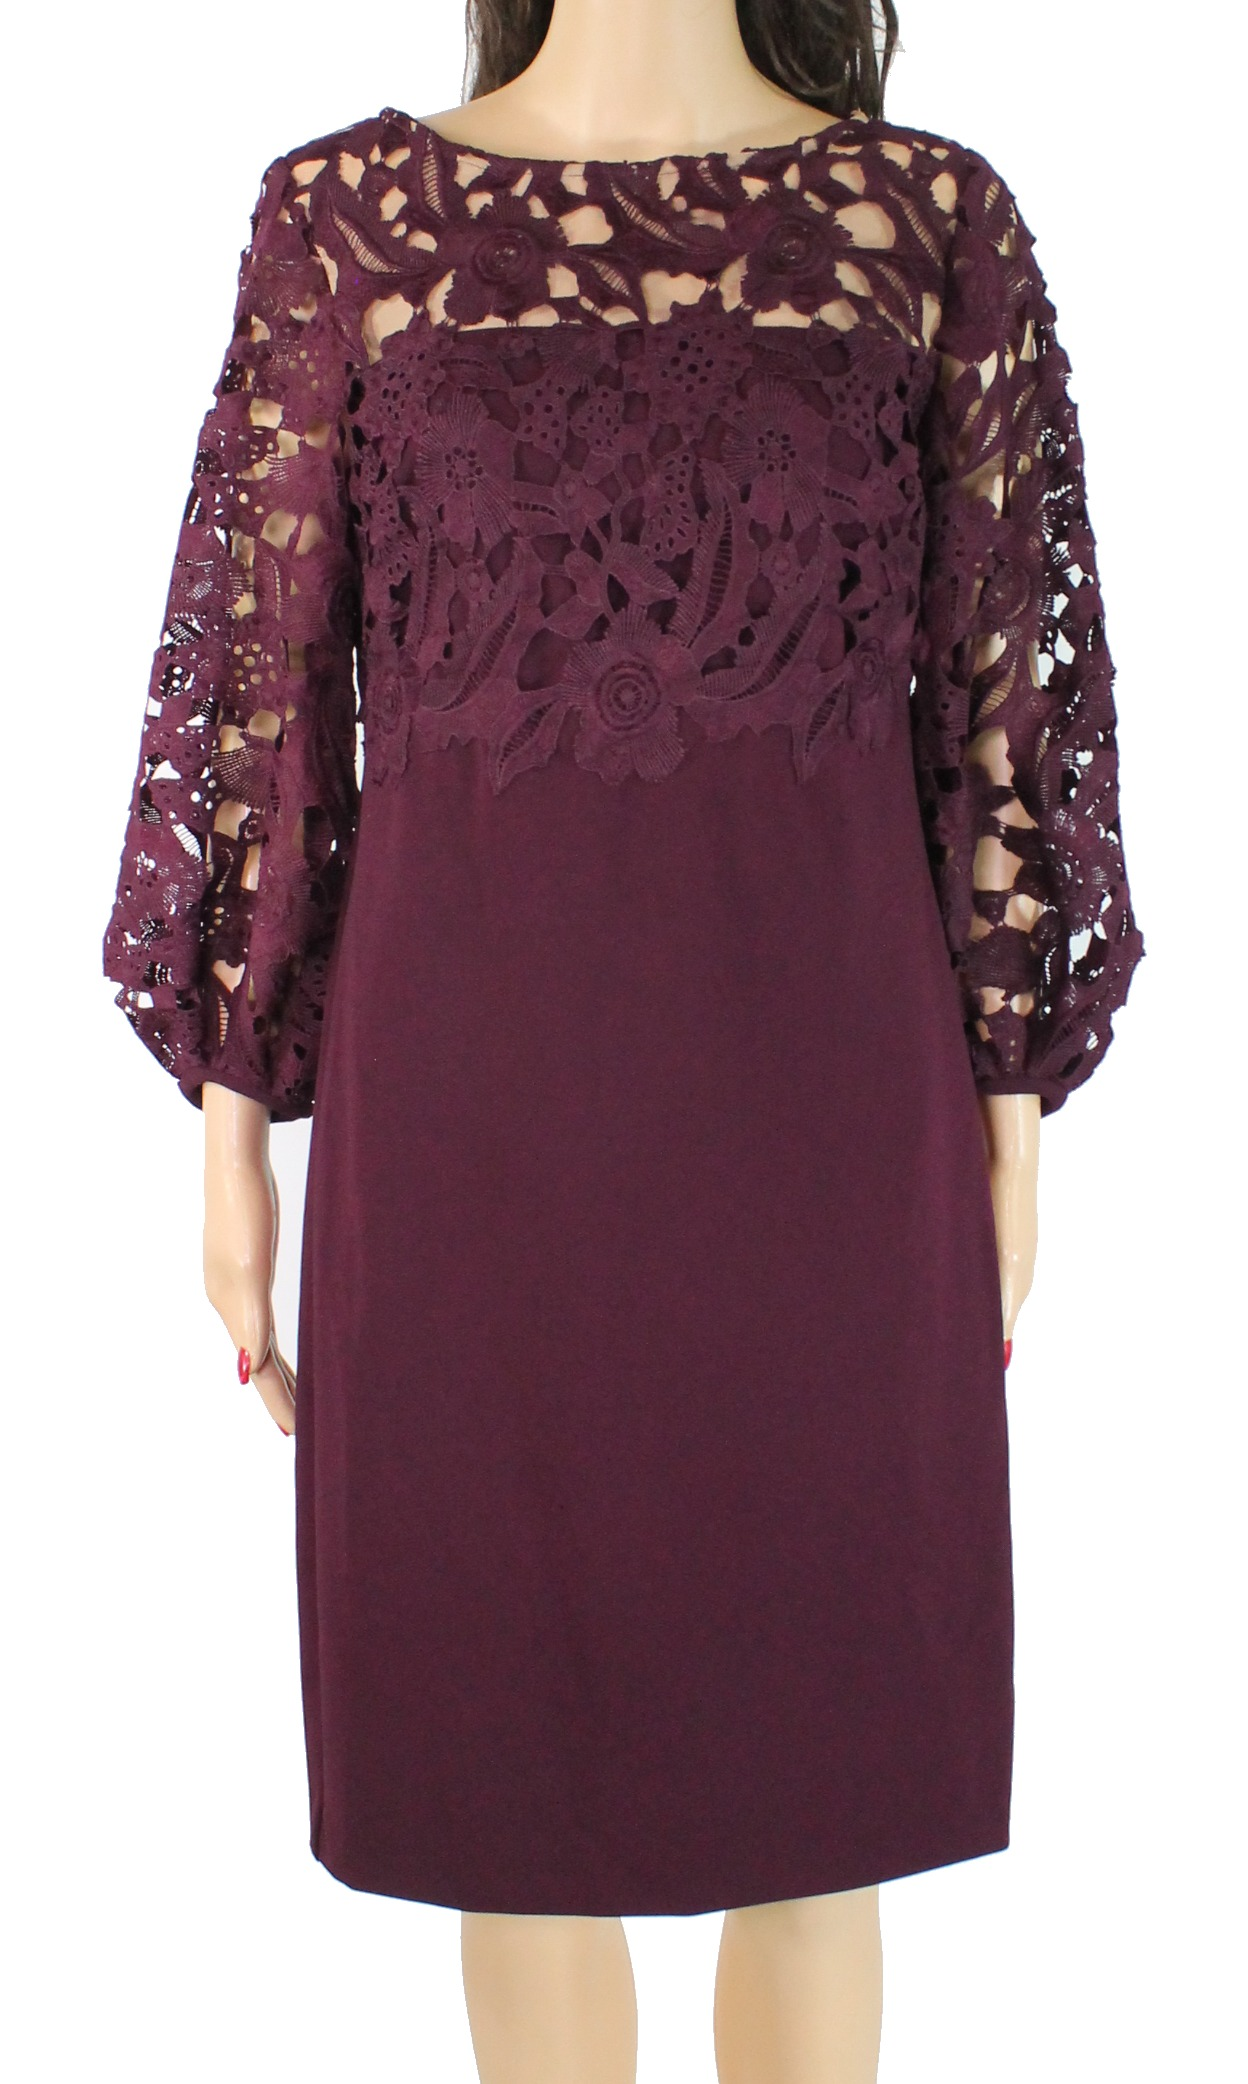 Ny Lauren av Ralph Lauren Kvinnor's Dress lila Storlek 8 Sheath Lace 185